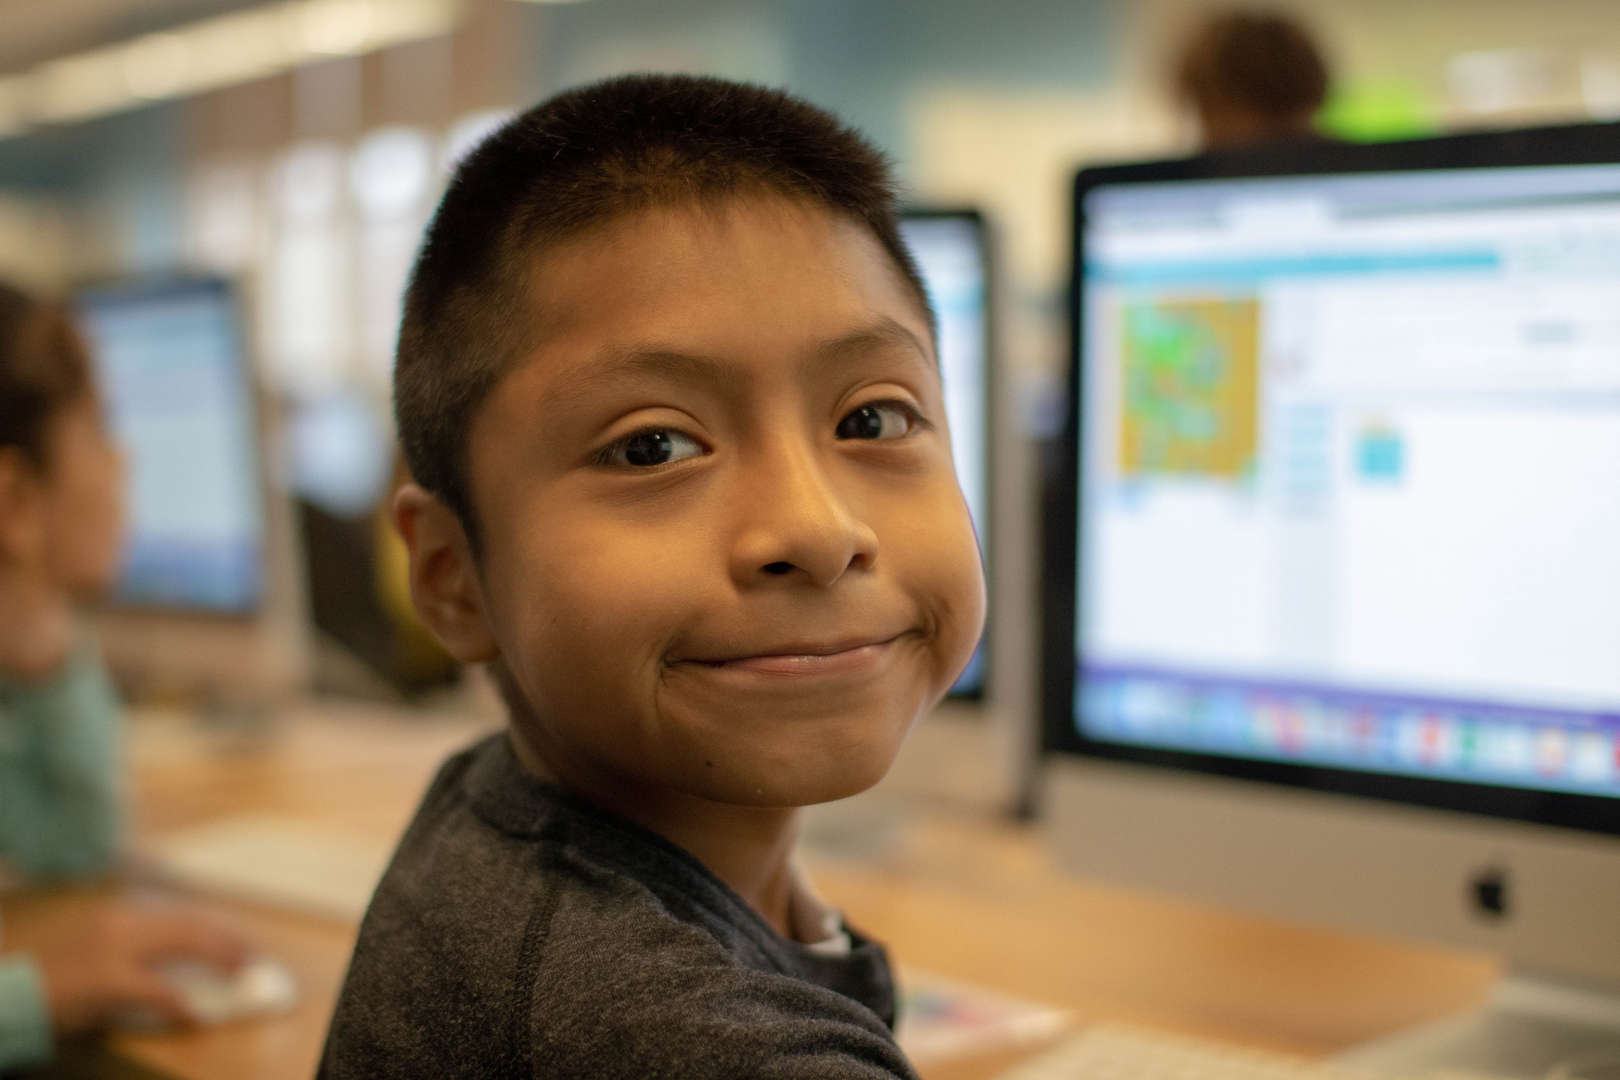 Boy Sitting at Computer, turning around to smile